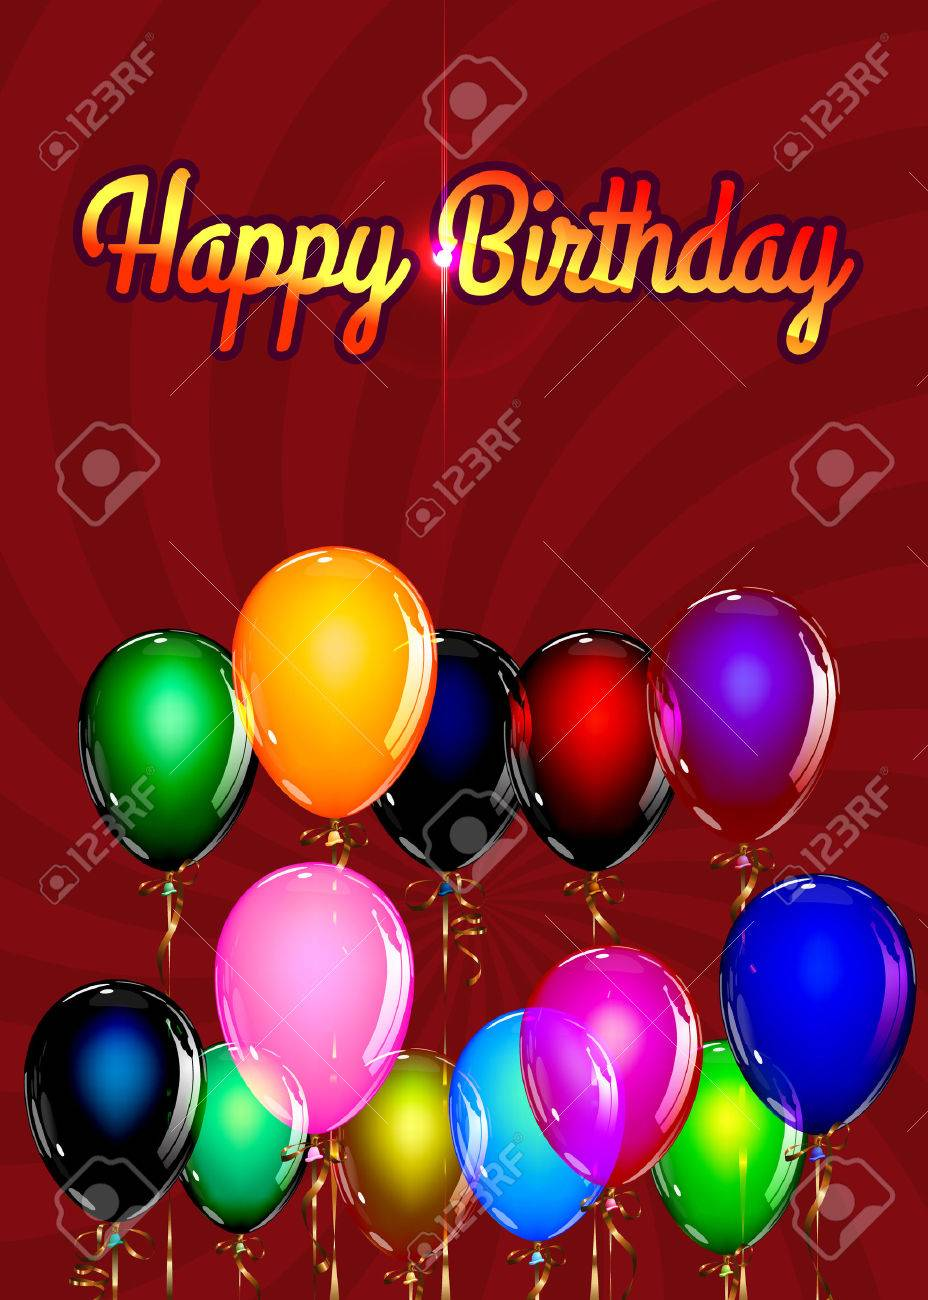 Happy Birthday Balloon Background With Gold Streamers Vector Illustration Stock